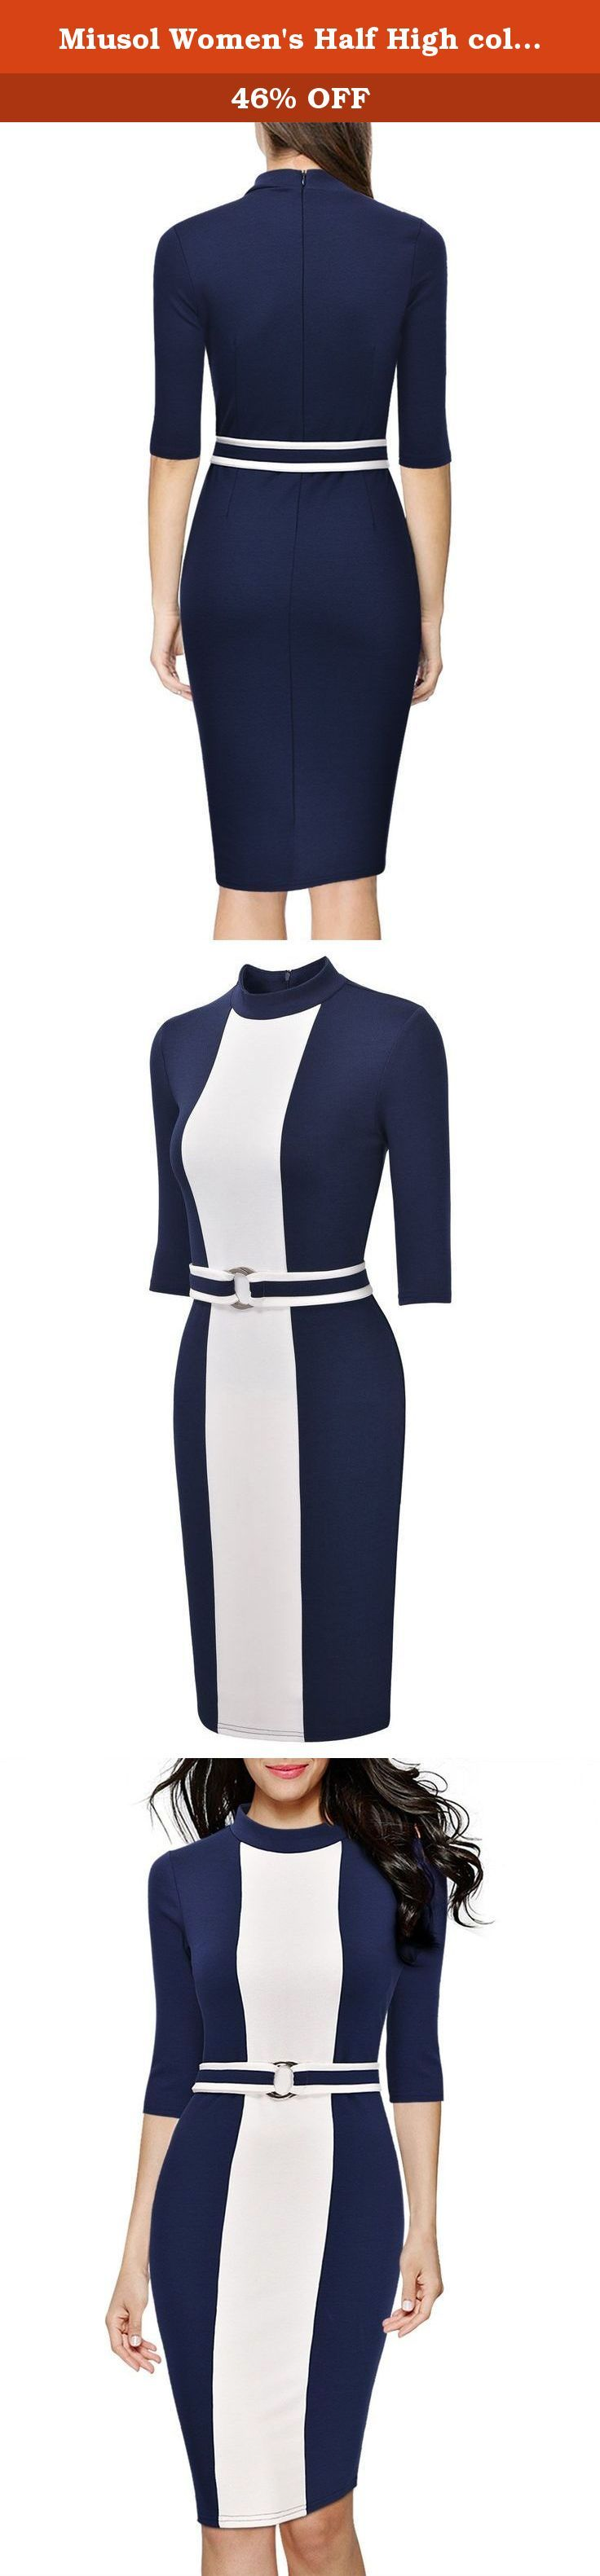 Miusol Women's Half High collar Optical Illusion Business Slim Dress. Women's Half High collar Optical Illusion Business Slim Dress.